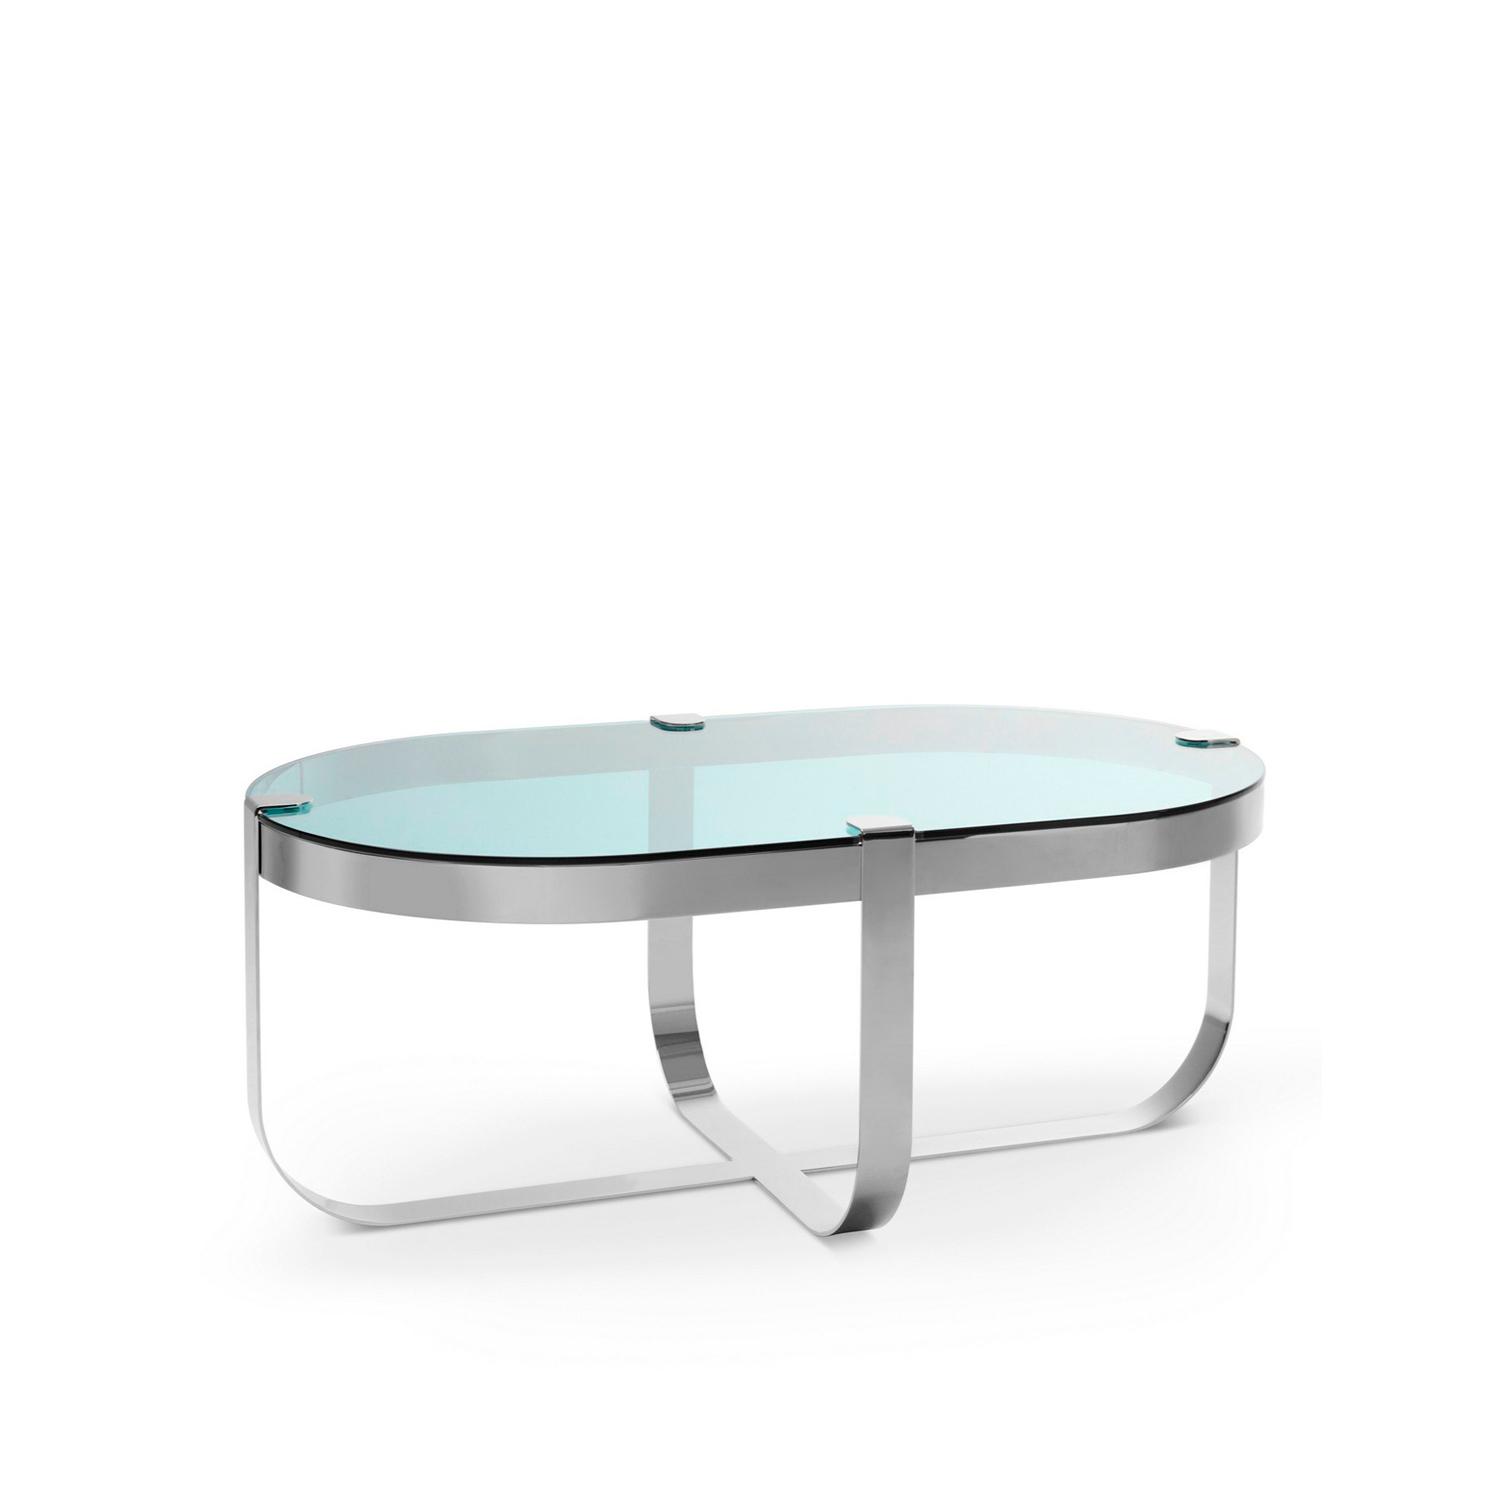 Ring Oval Coffee Table - Elegant like jewellery, the Ring coffee tables are inspired by raw cuts of precious stones prior to being mounted into rings.‎ The choice of materials is aimed to emphasise this inspiration behind the collection.‎ The metal base structures are available in copper, brass, steel and nickel, each of which corresponds to a geometric form.‎ Like in jewellery design, the glass tops in transparent or light colours are literally set onto the base structures.‎